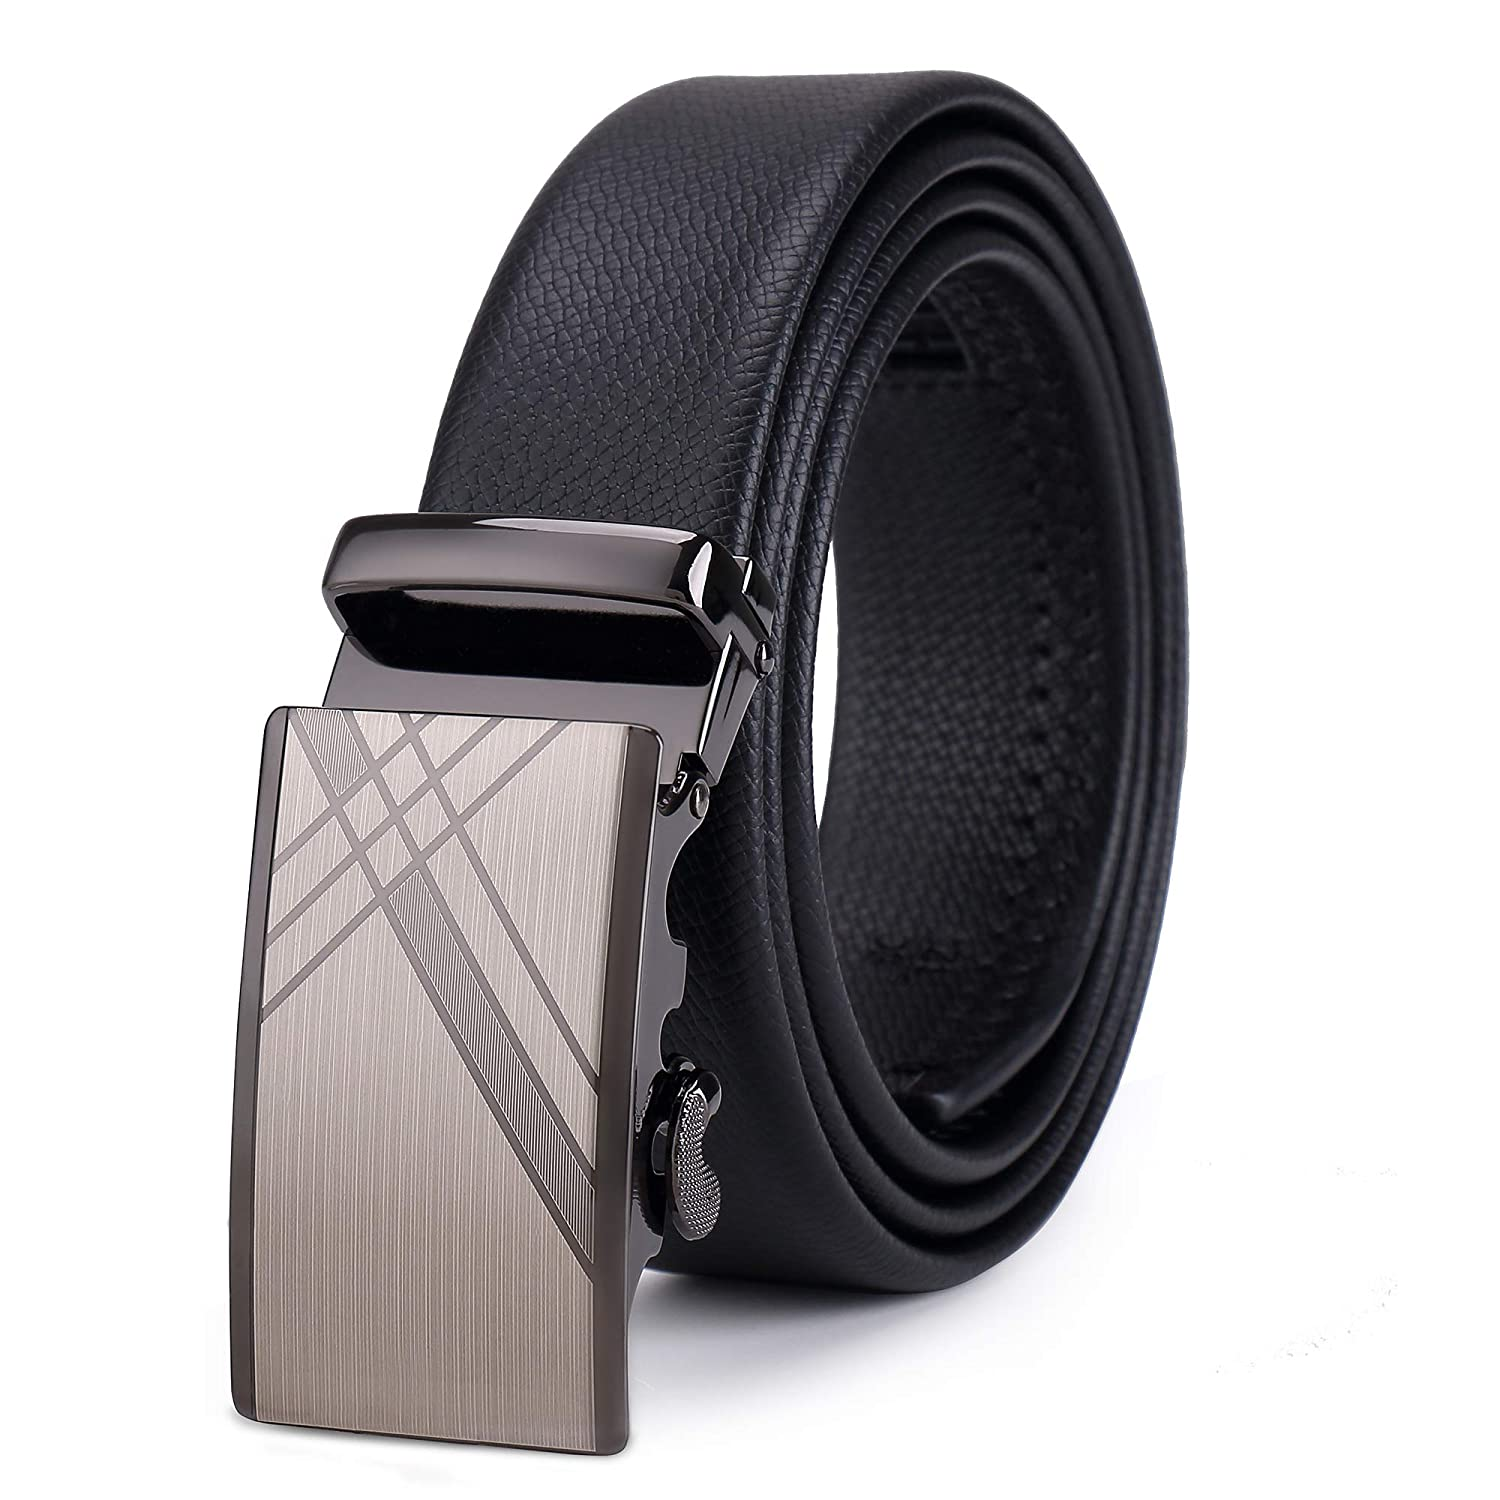 Ottboom Mens Leather Ratchet Dress Belt with Automatic Buckle icluding a Gift Box